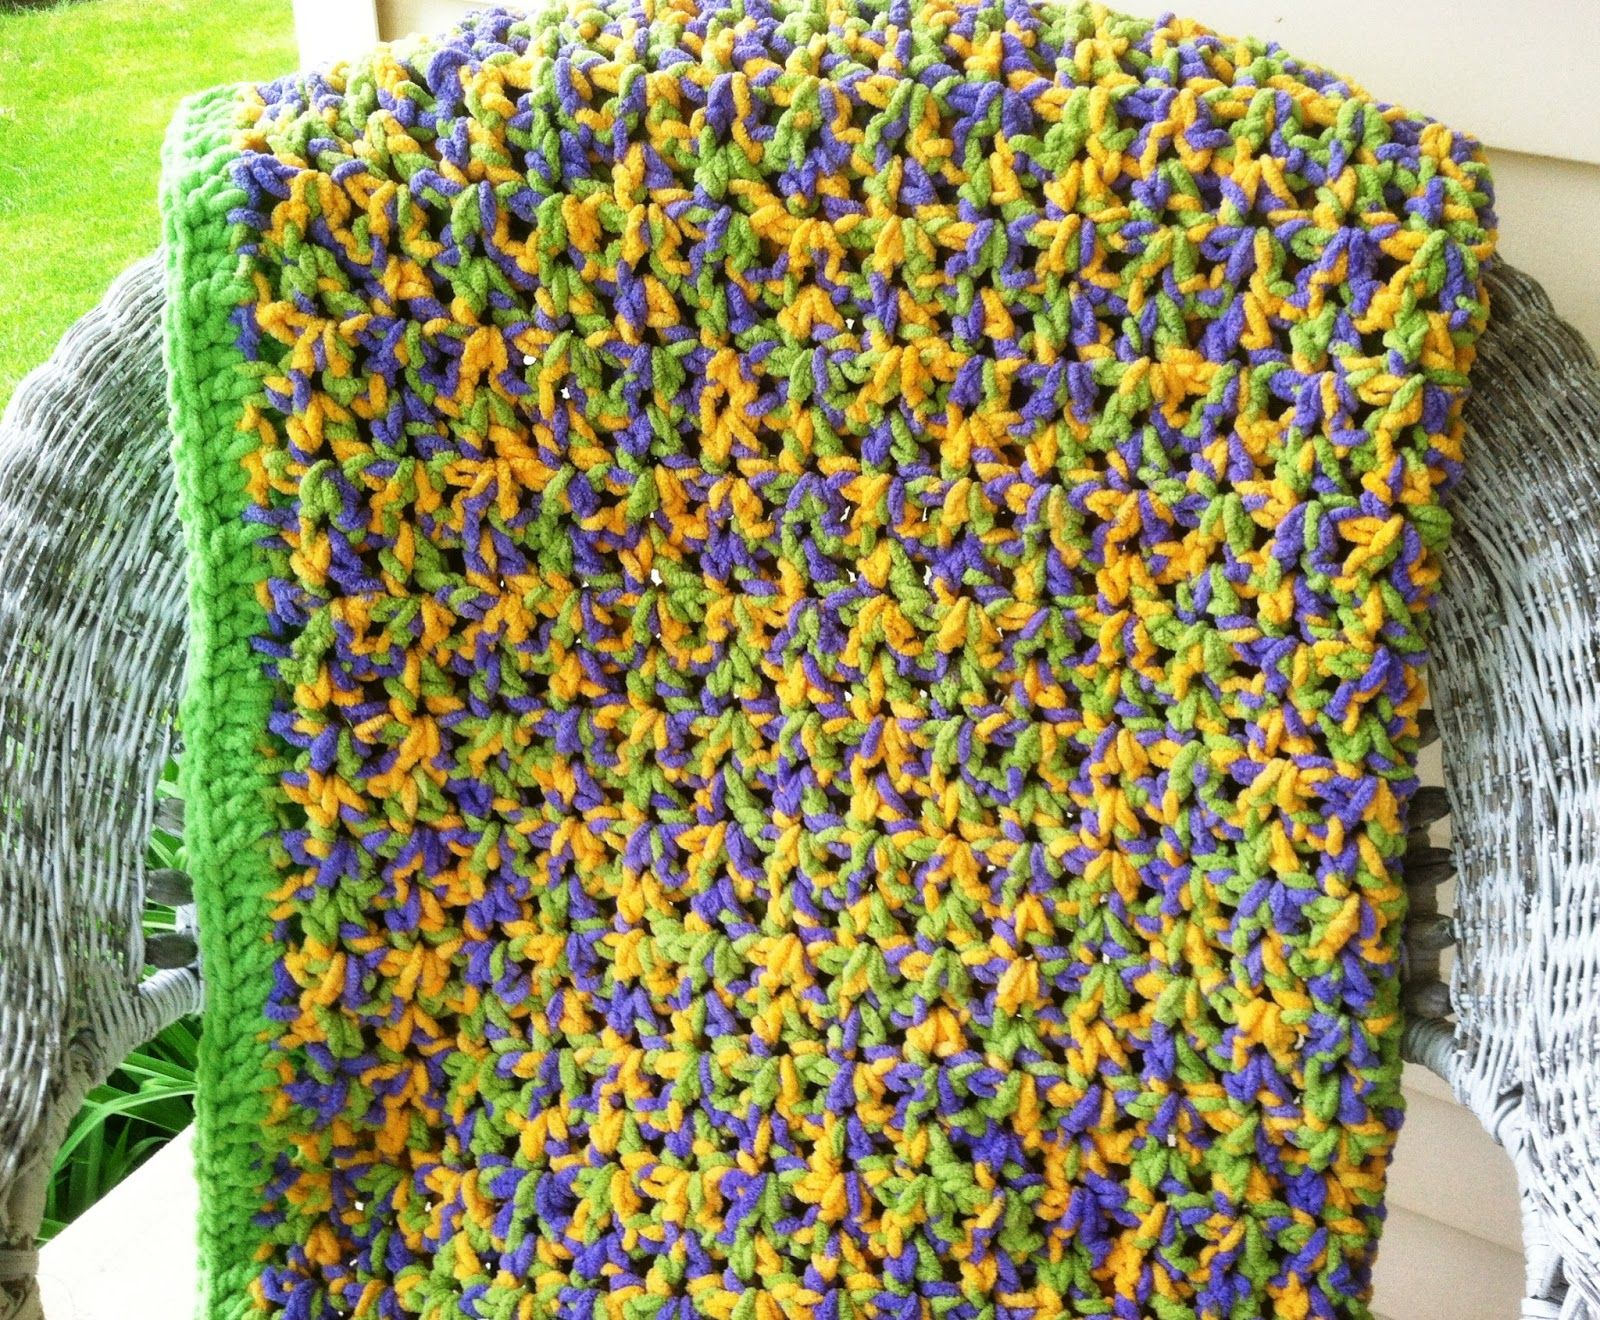 Kays list of work from home my newest bernat baby blanket crochet pattern quick easy crochet afghan using bernat baby blanket yarnbernat baby blanket yarn isnt just for babies anymore i made this pattern for bankloansurffo Images